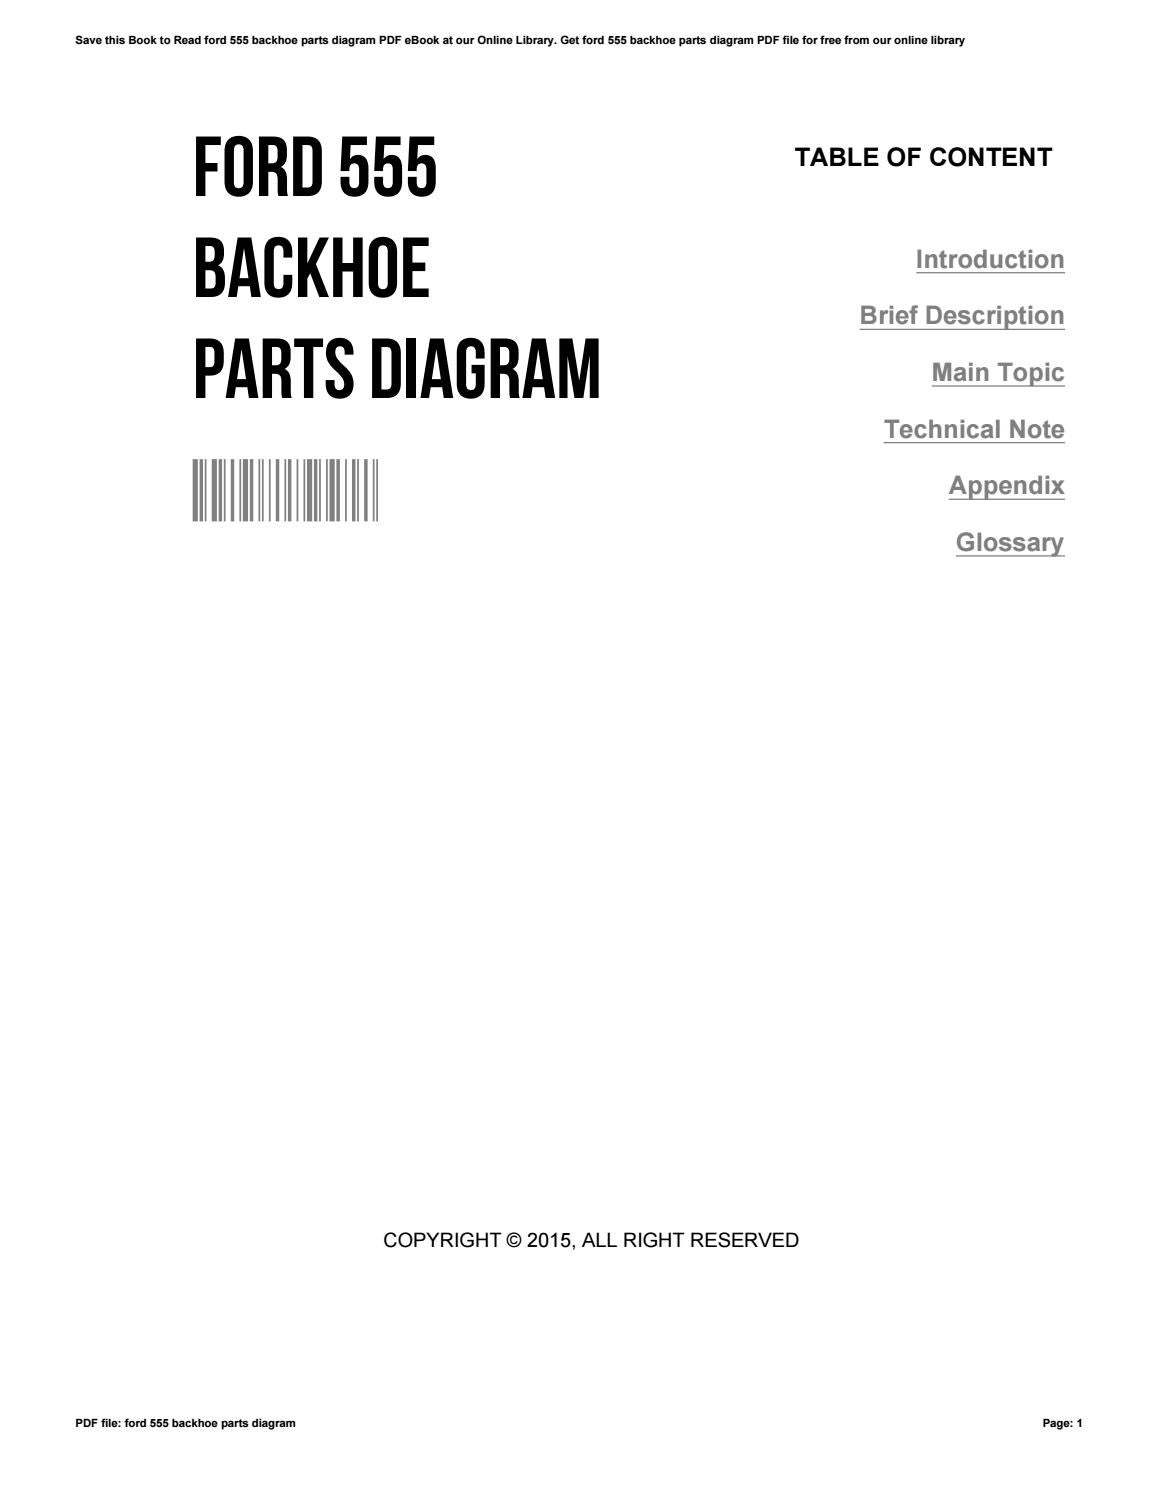 bwd ford electrical parts and illustrated page guide online ignition relid